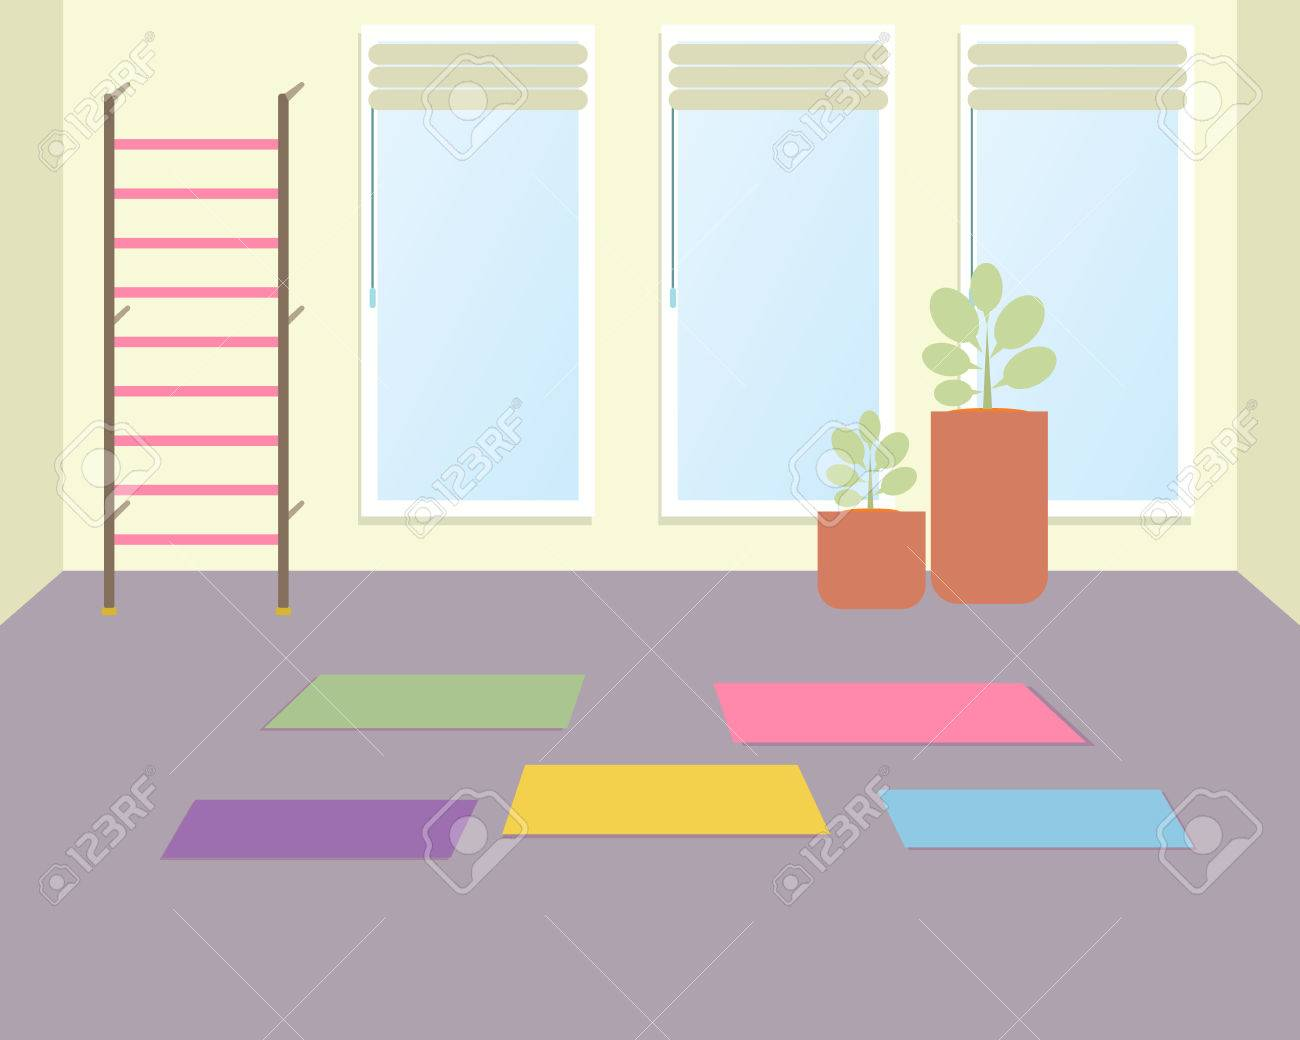 Empty Workout Room With Sleeping Pads A Vector Illustration Of Yoga Class For Kids